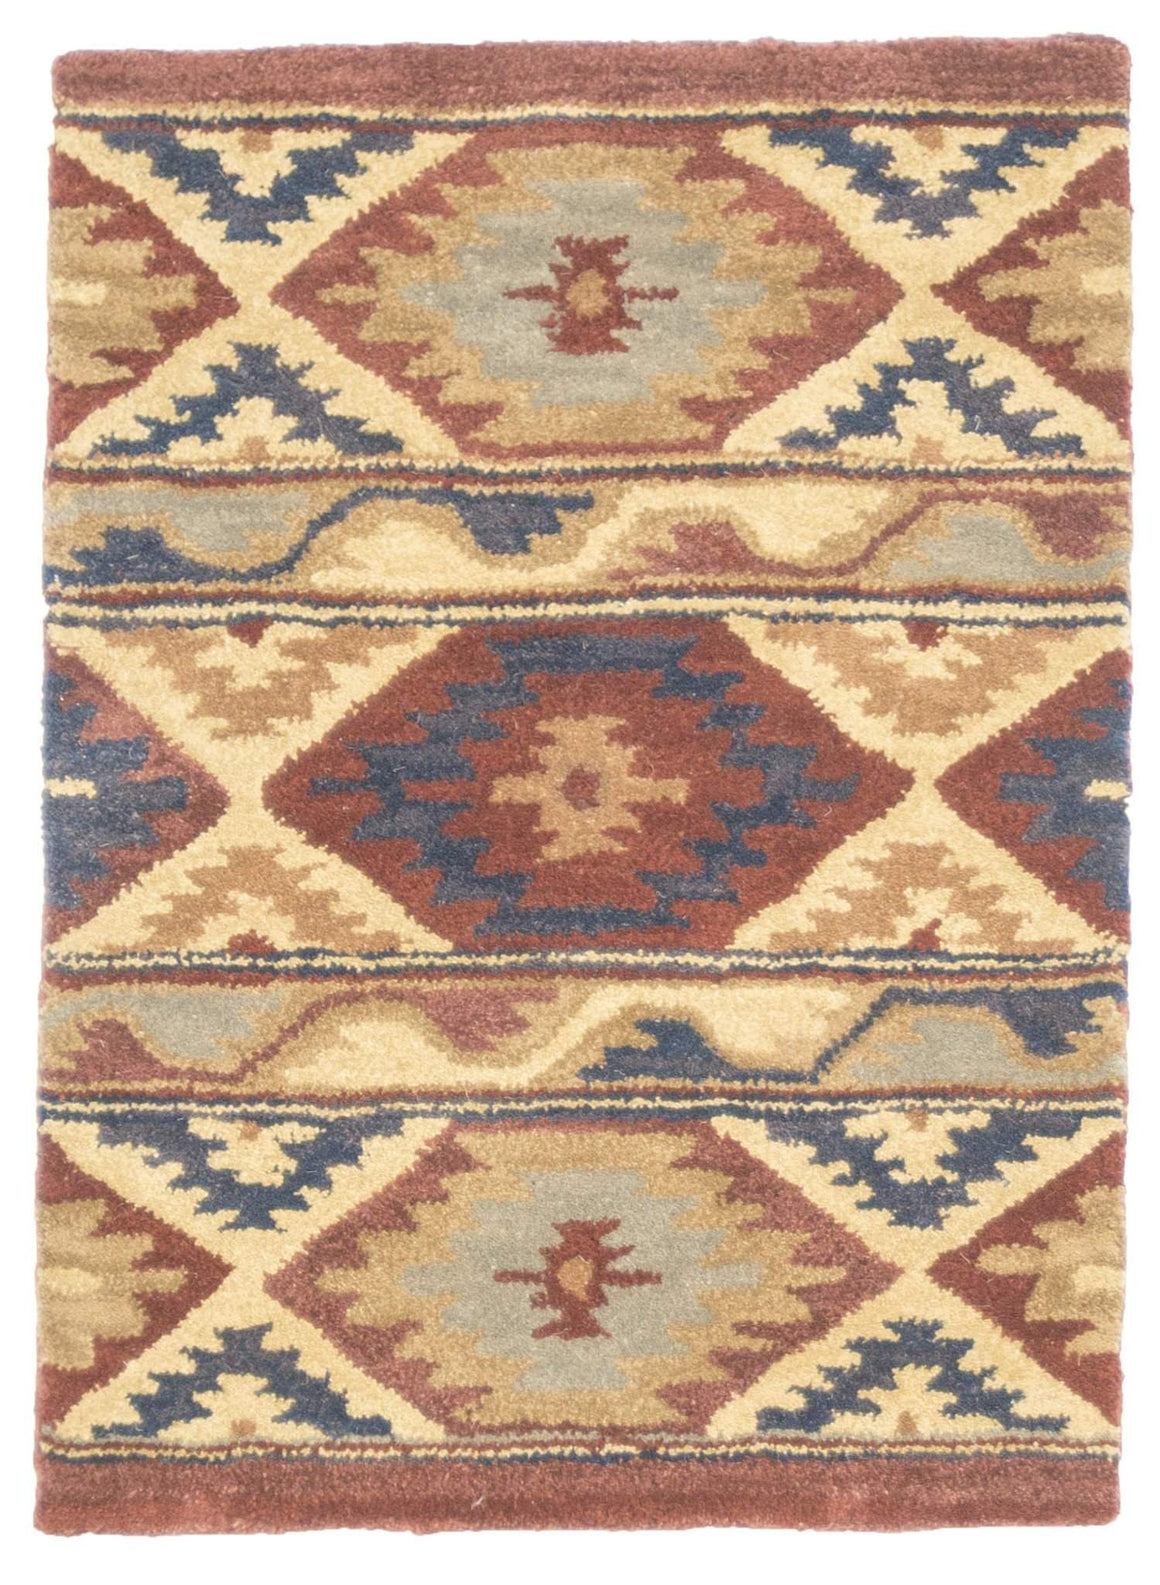 2' x 3' Southwest Design Wool Small Rug by Rug Shop and More-Area Rugs-Rug Shop and More